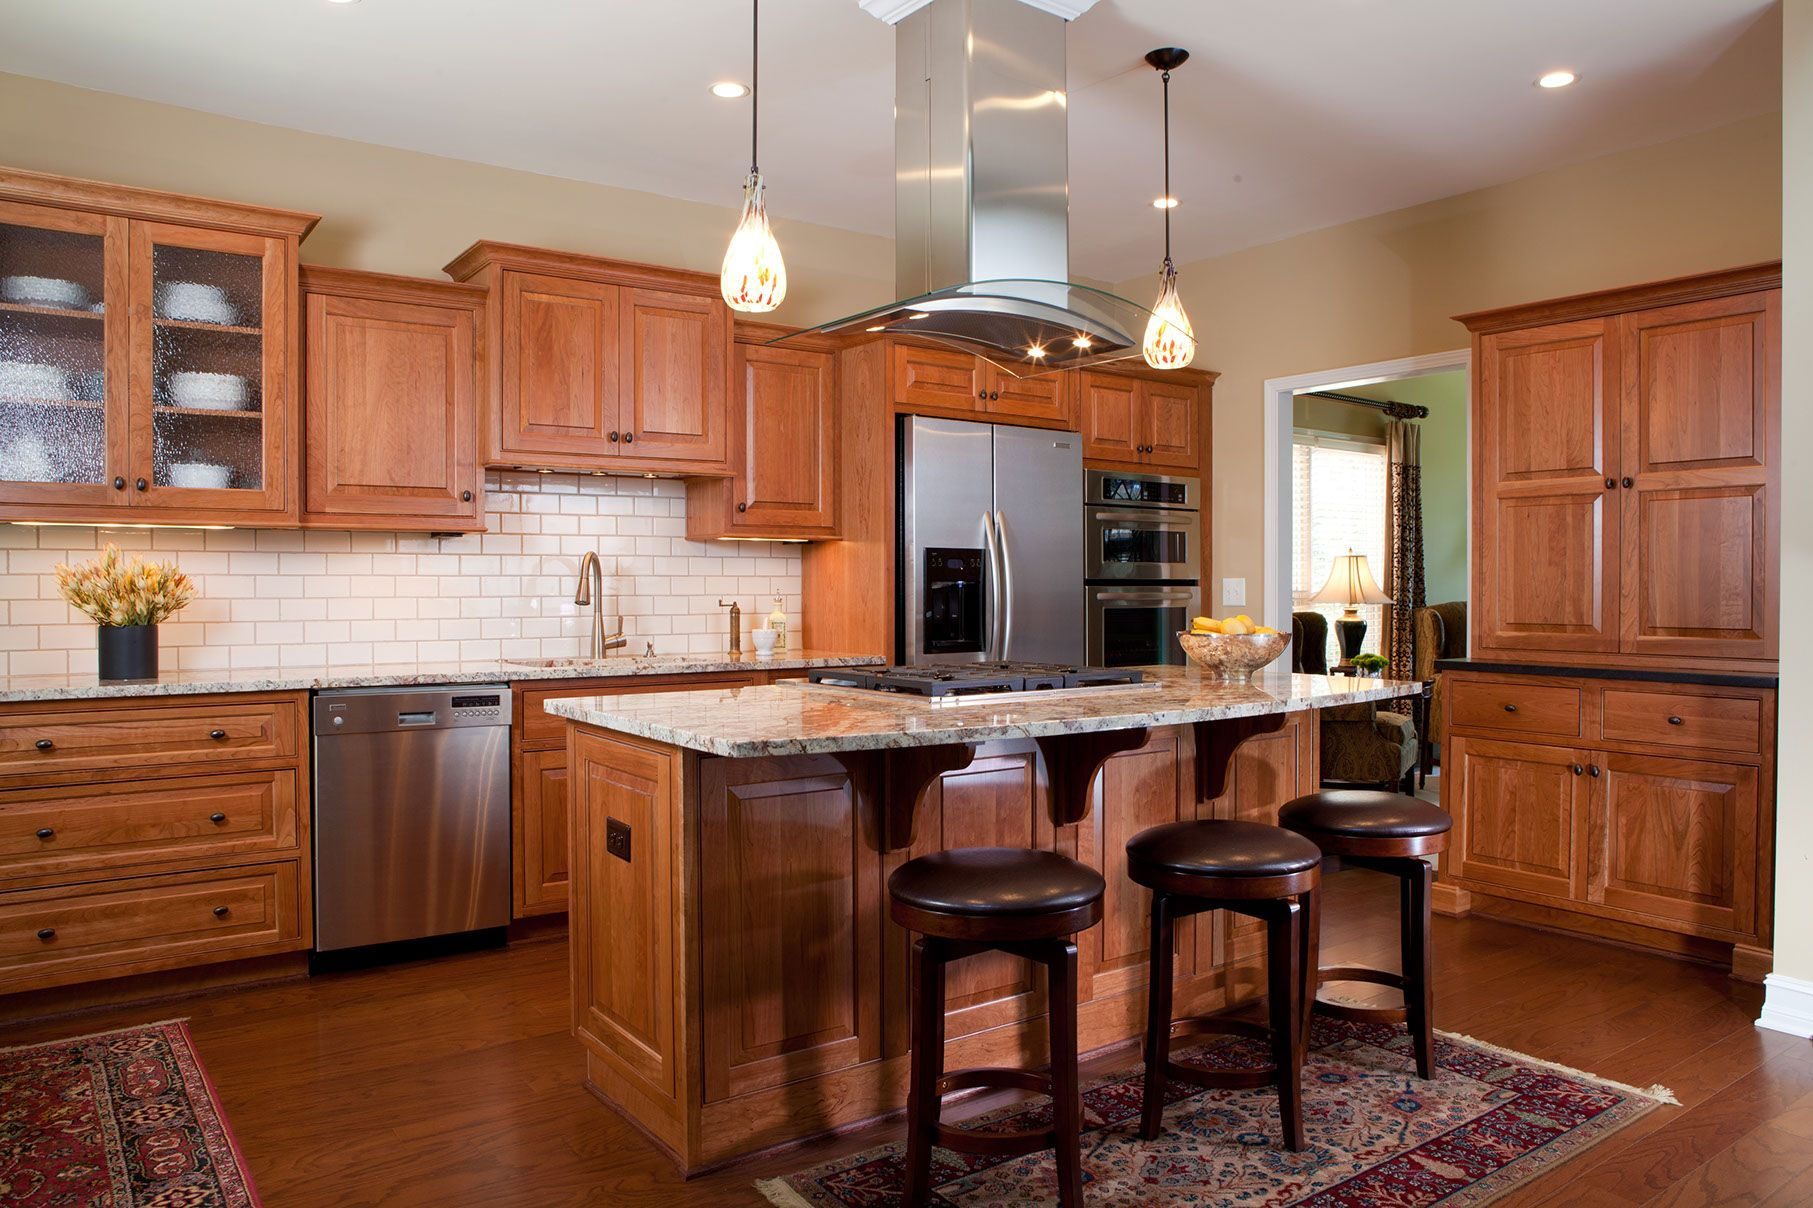 Shilohcabinetry Com Gallery 2 New Kitchen Cabinets Green Kitchen Designs Cherry Cabinets Kitchen